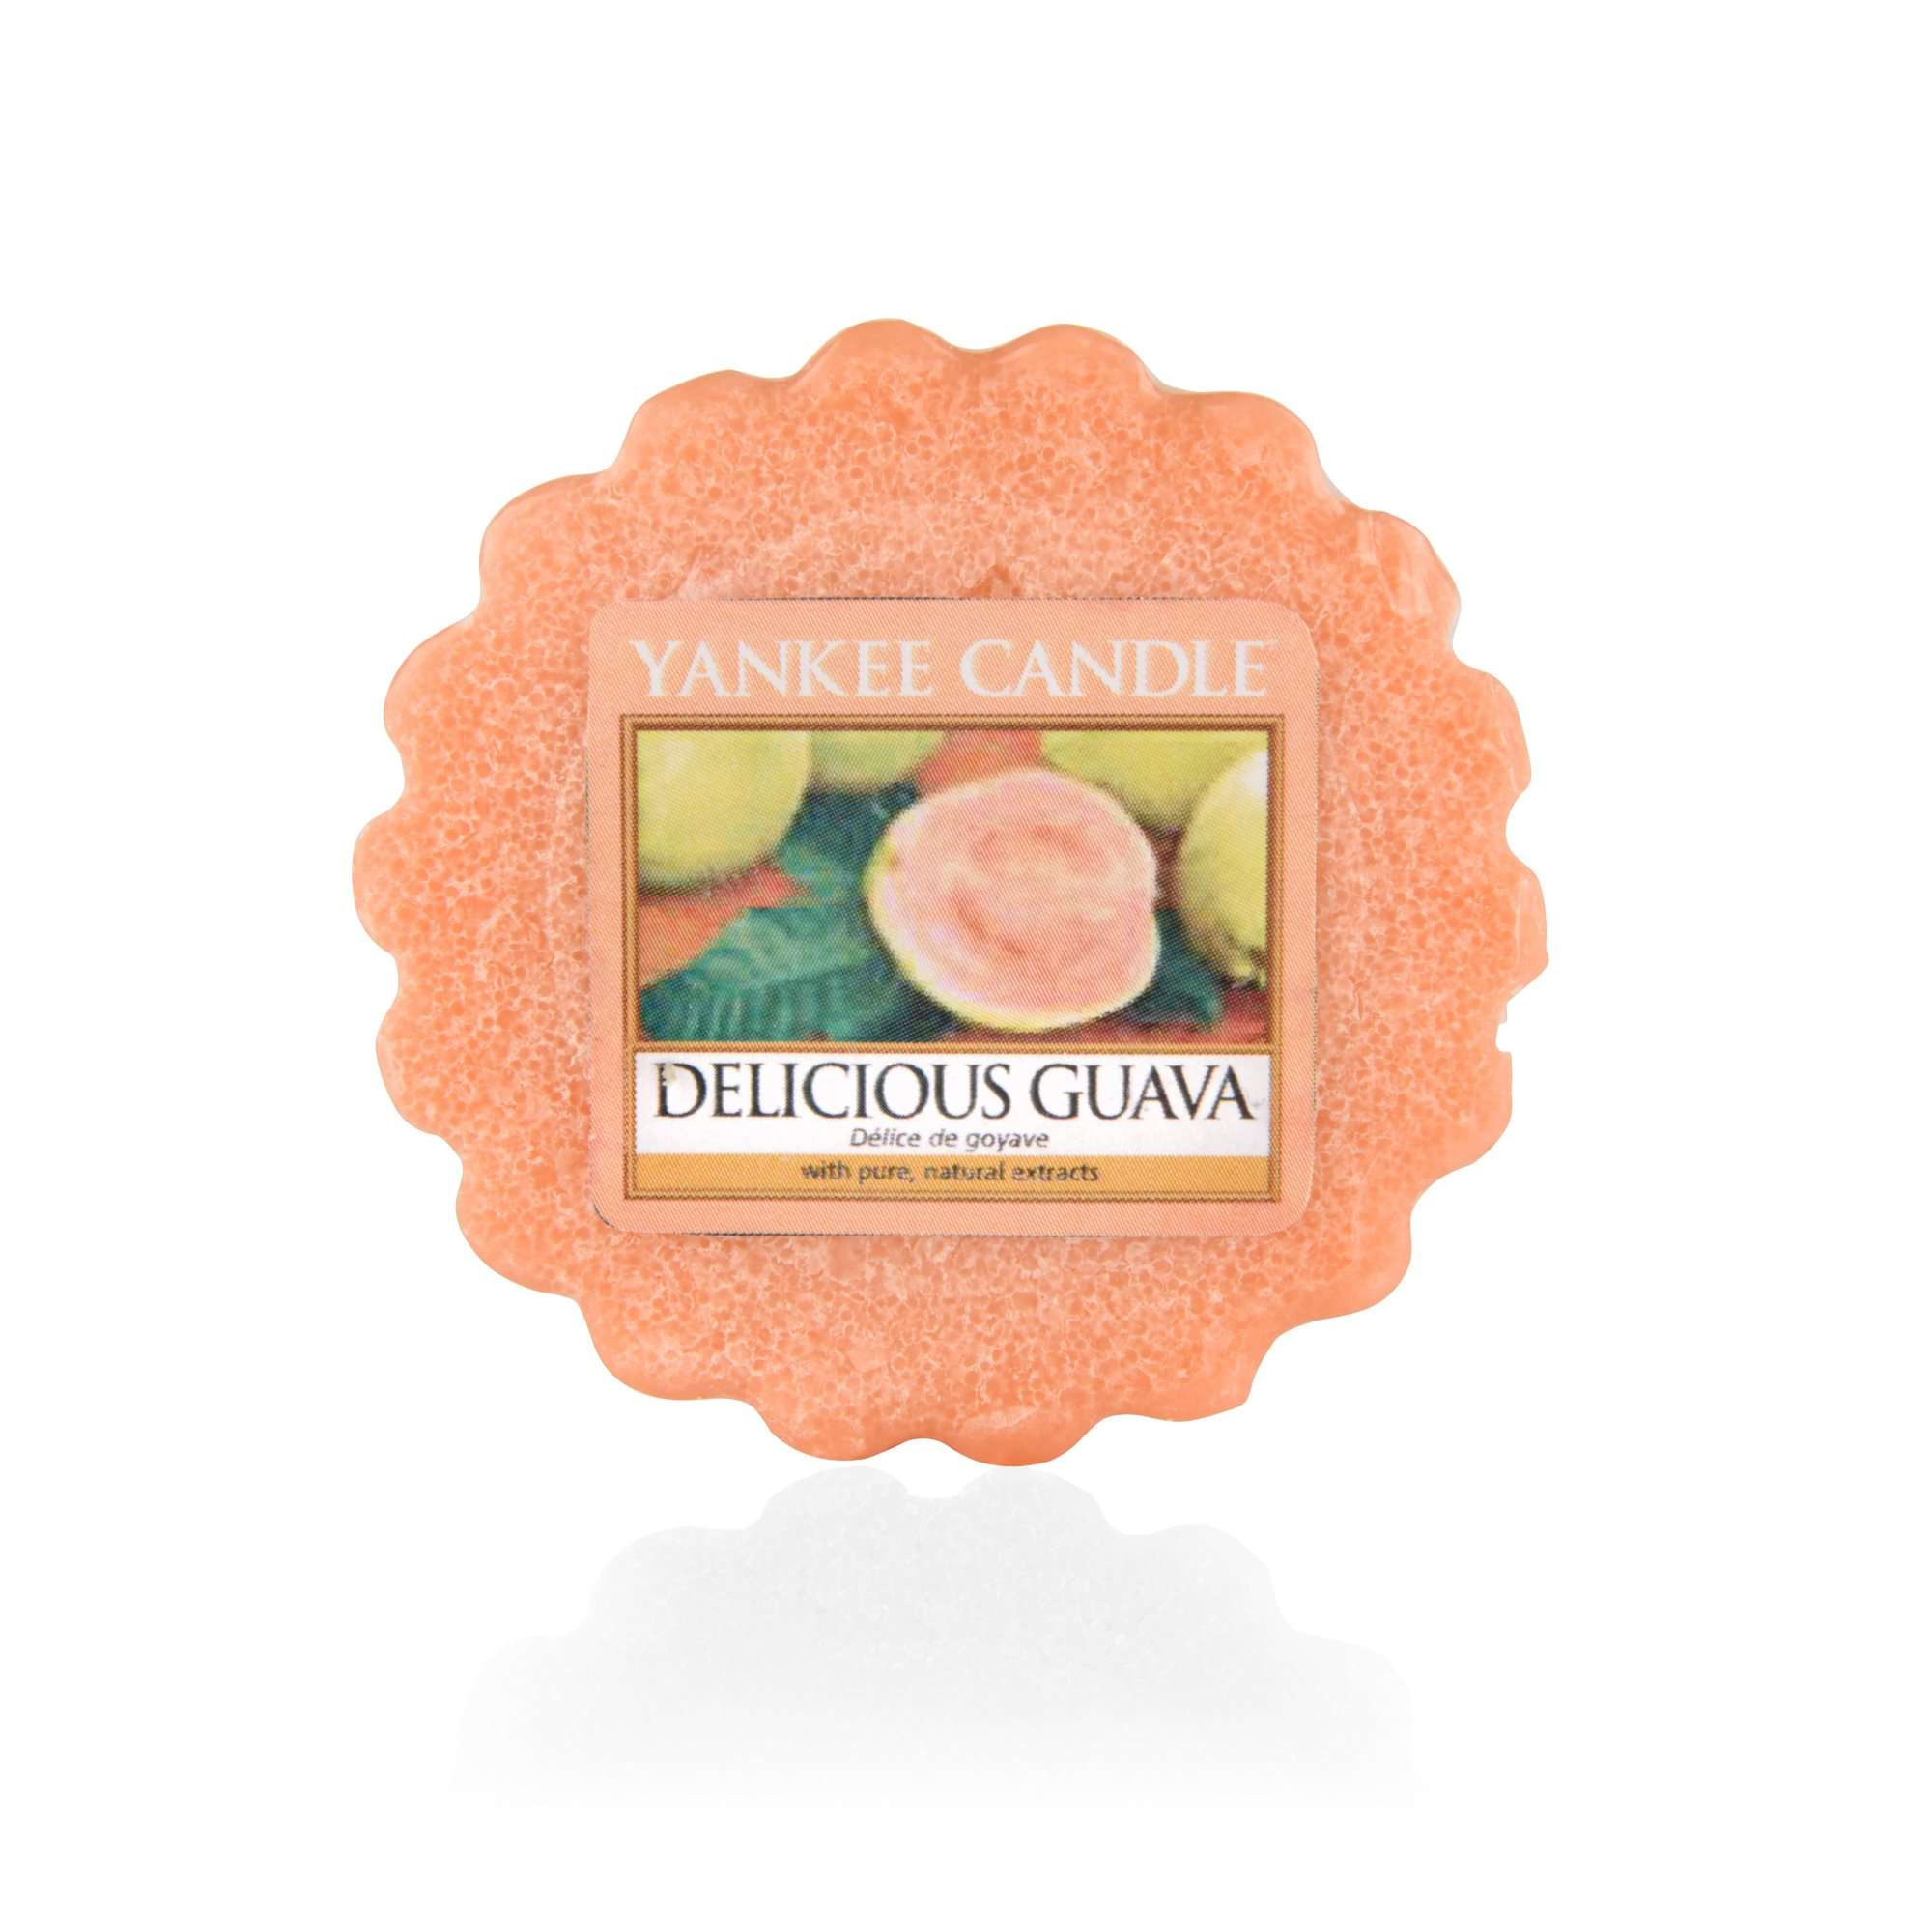 Yankee Candle Dufttart 22g Delicious Guava